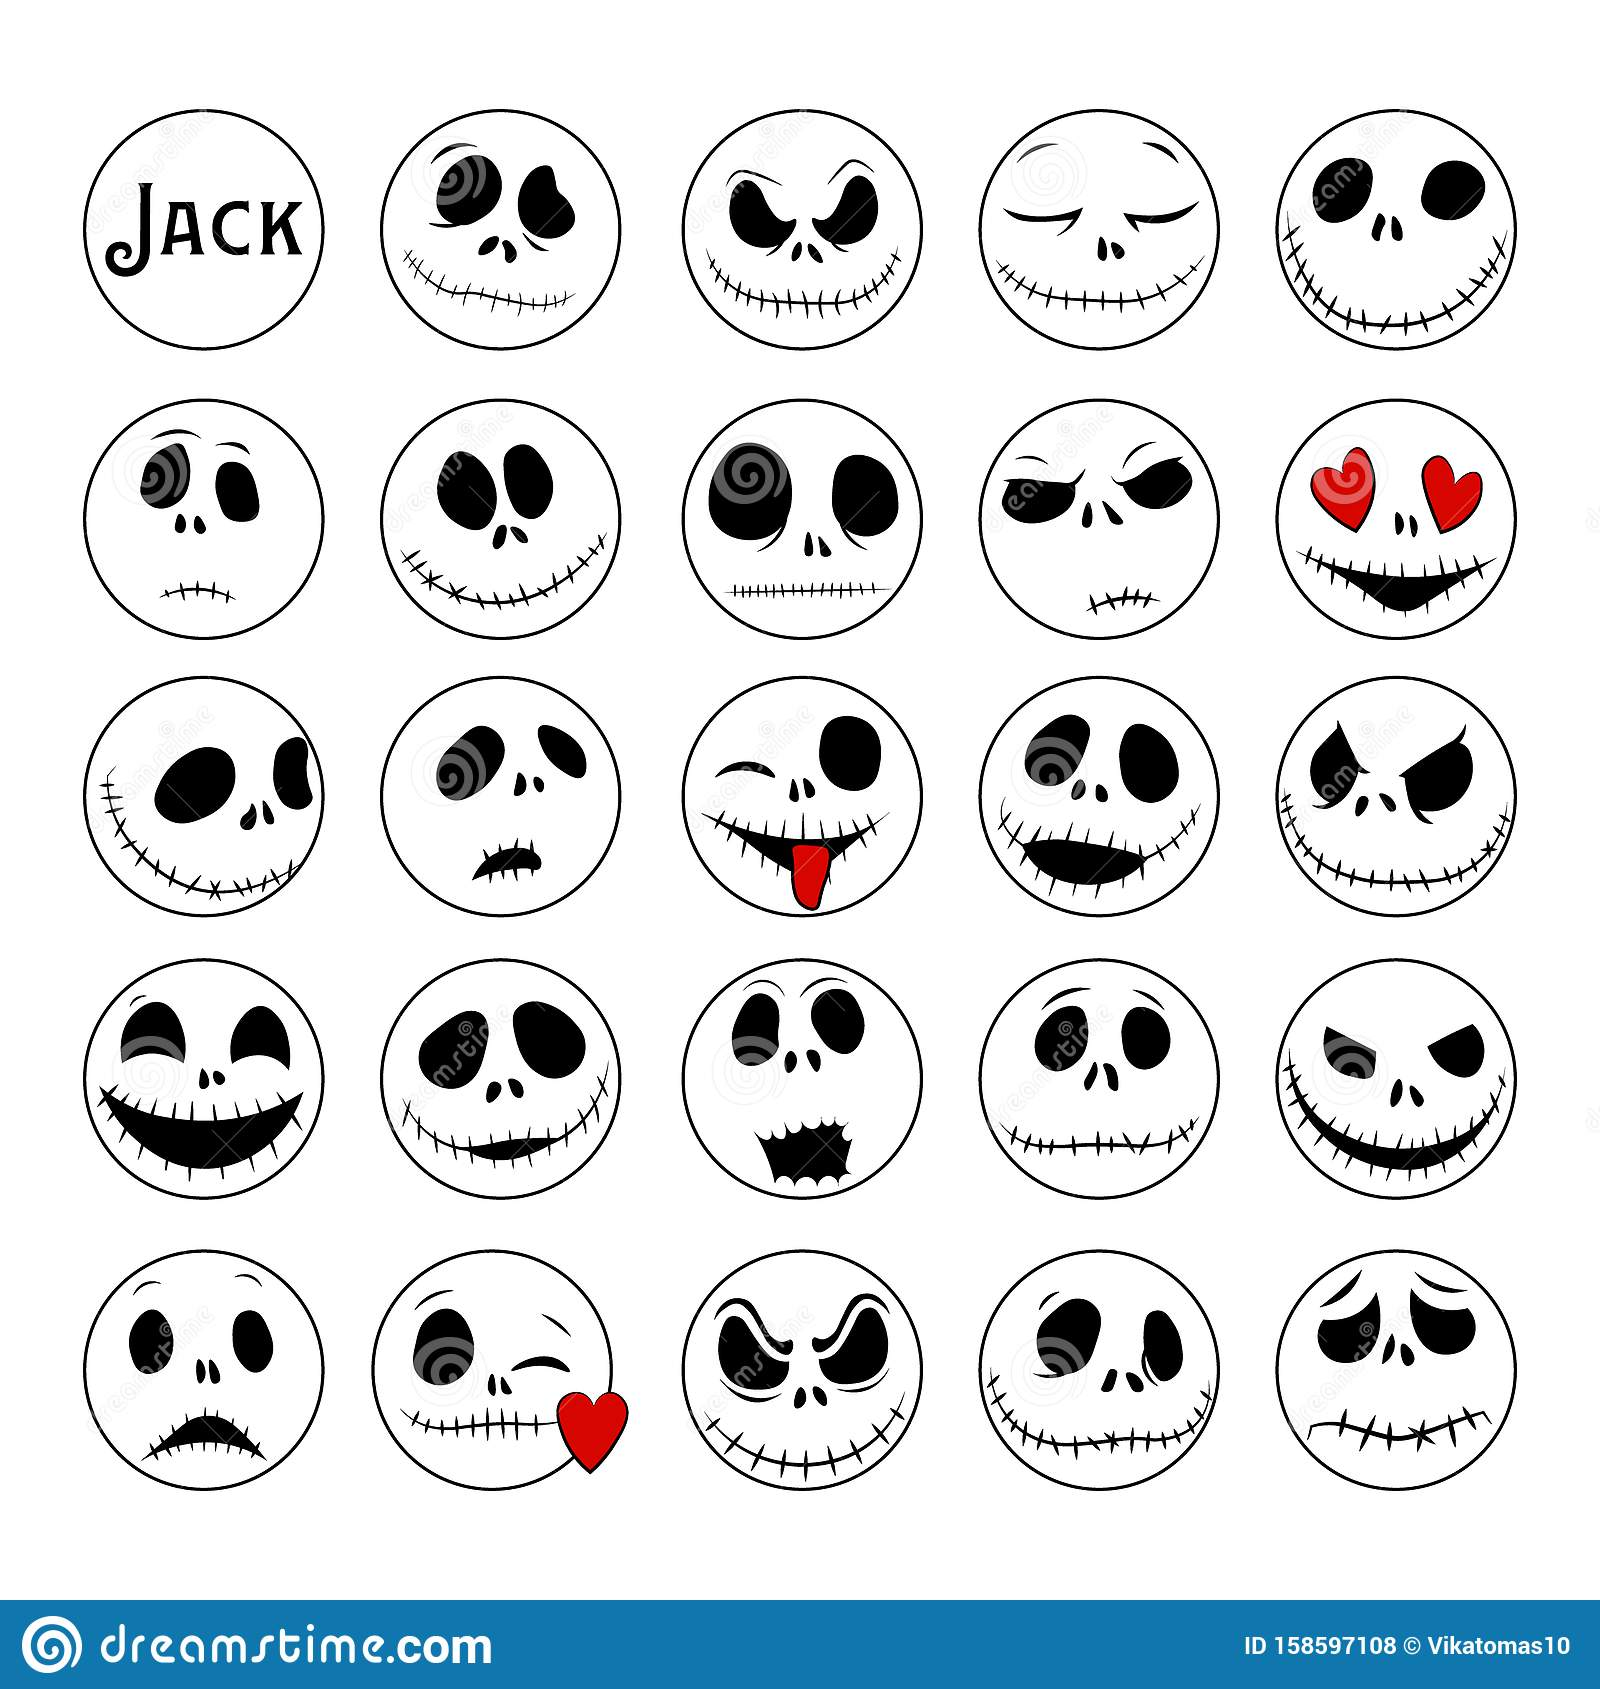 Vector Collection Of Halloween Faces The Nightmare Before Christmas Jack Skellington Halloween Jack Faces Silhouettes Stock Illustration Illustration Of Celebration Demon 158597108